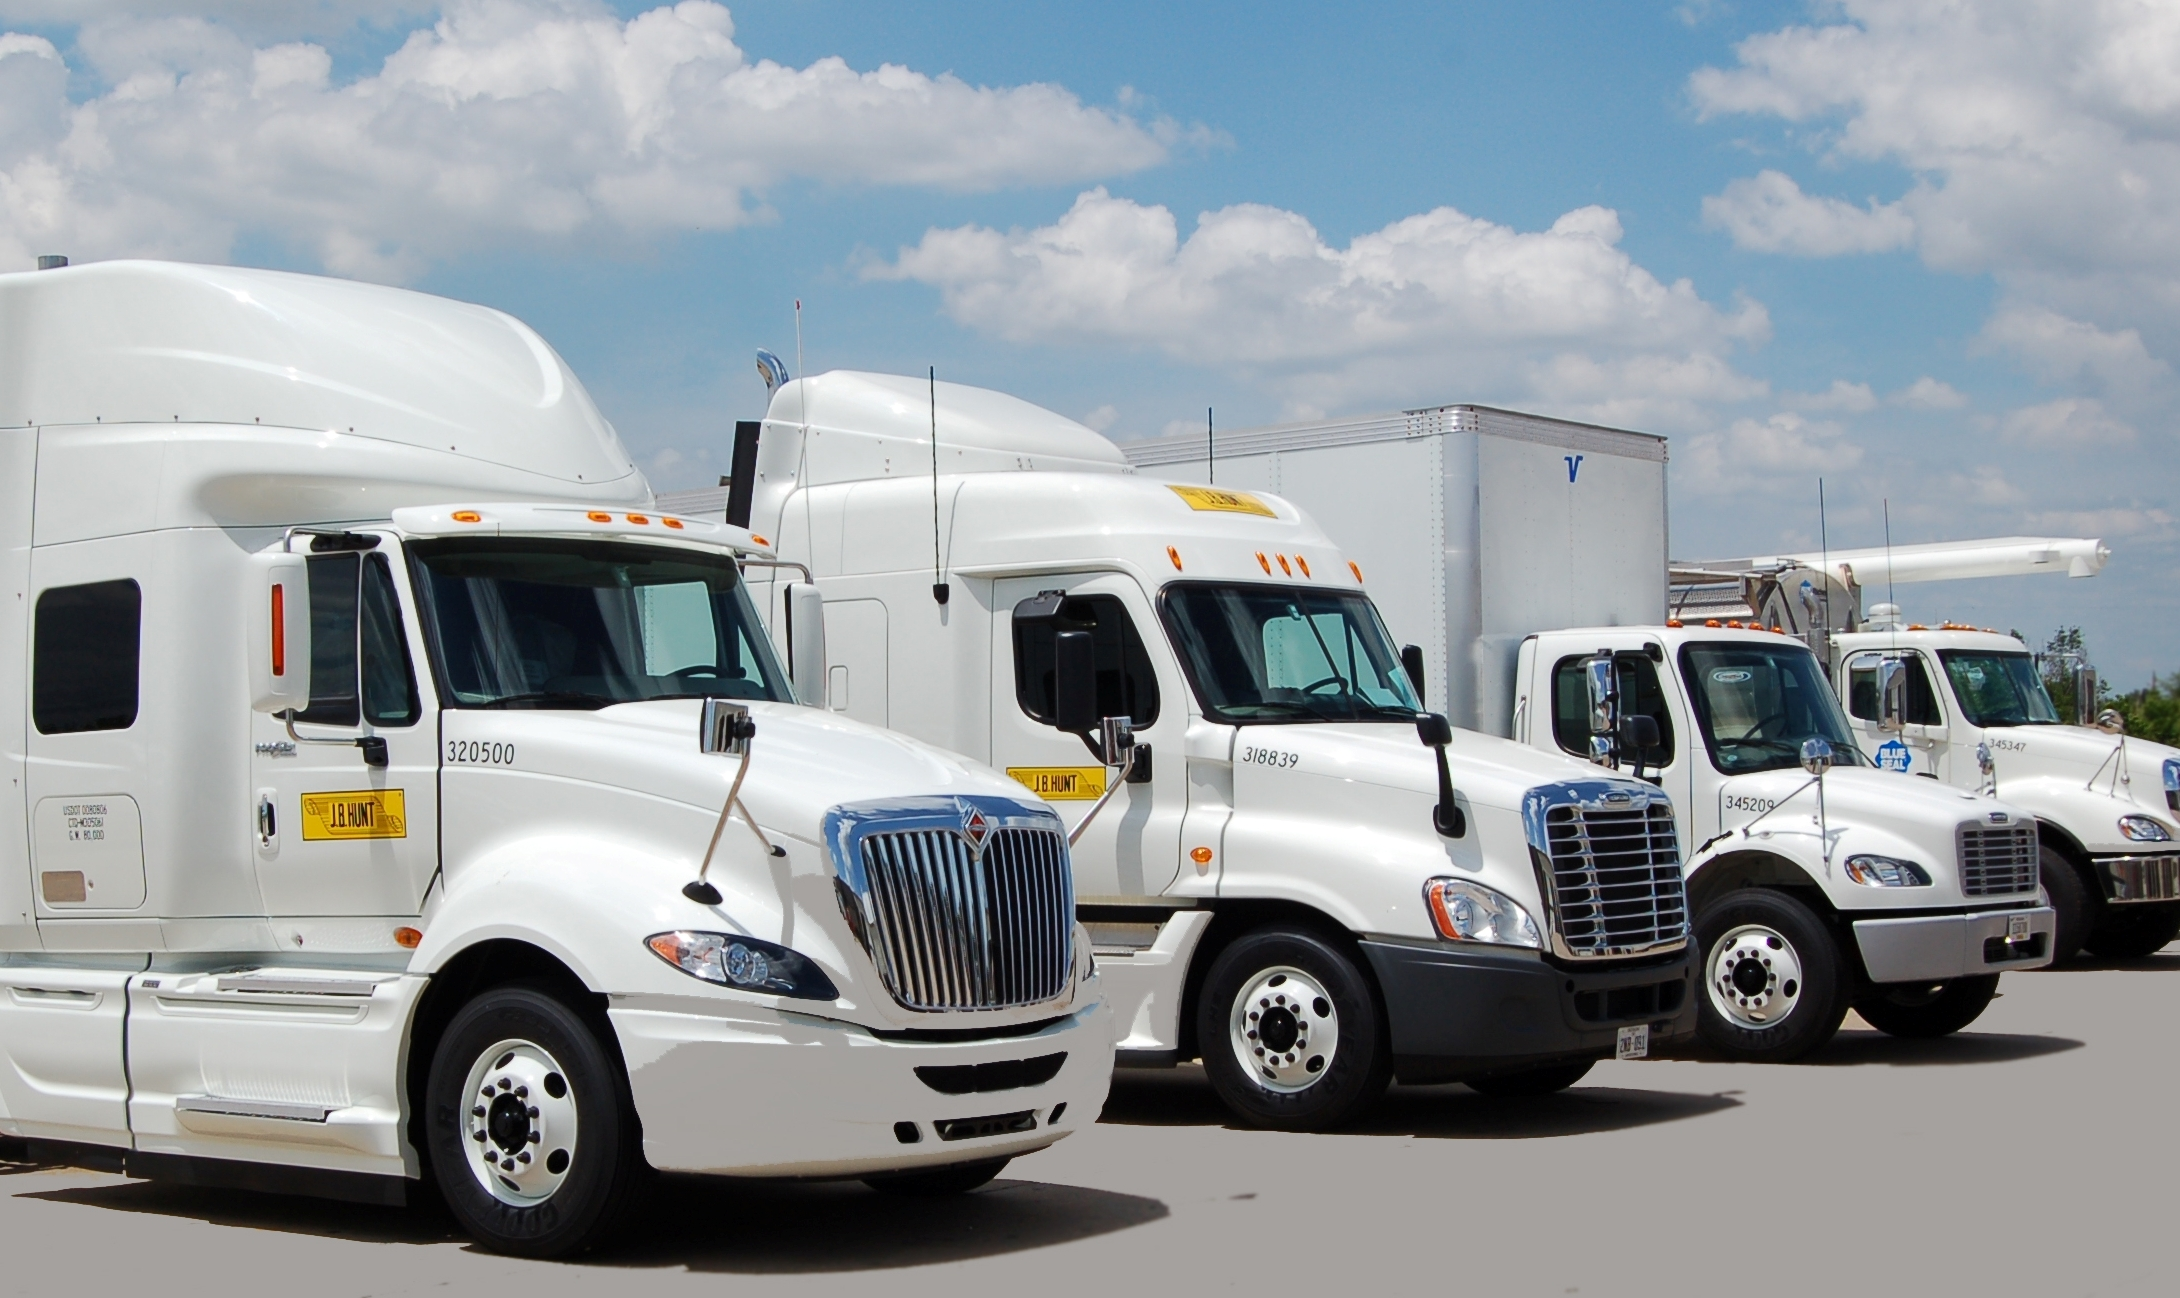 Jb Lighting Jobs 7 Reasons Why Your Next Truck Driving Job Should Be With J B Hunt